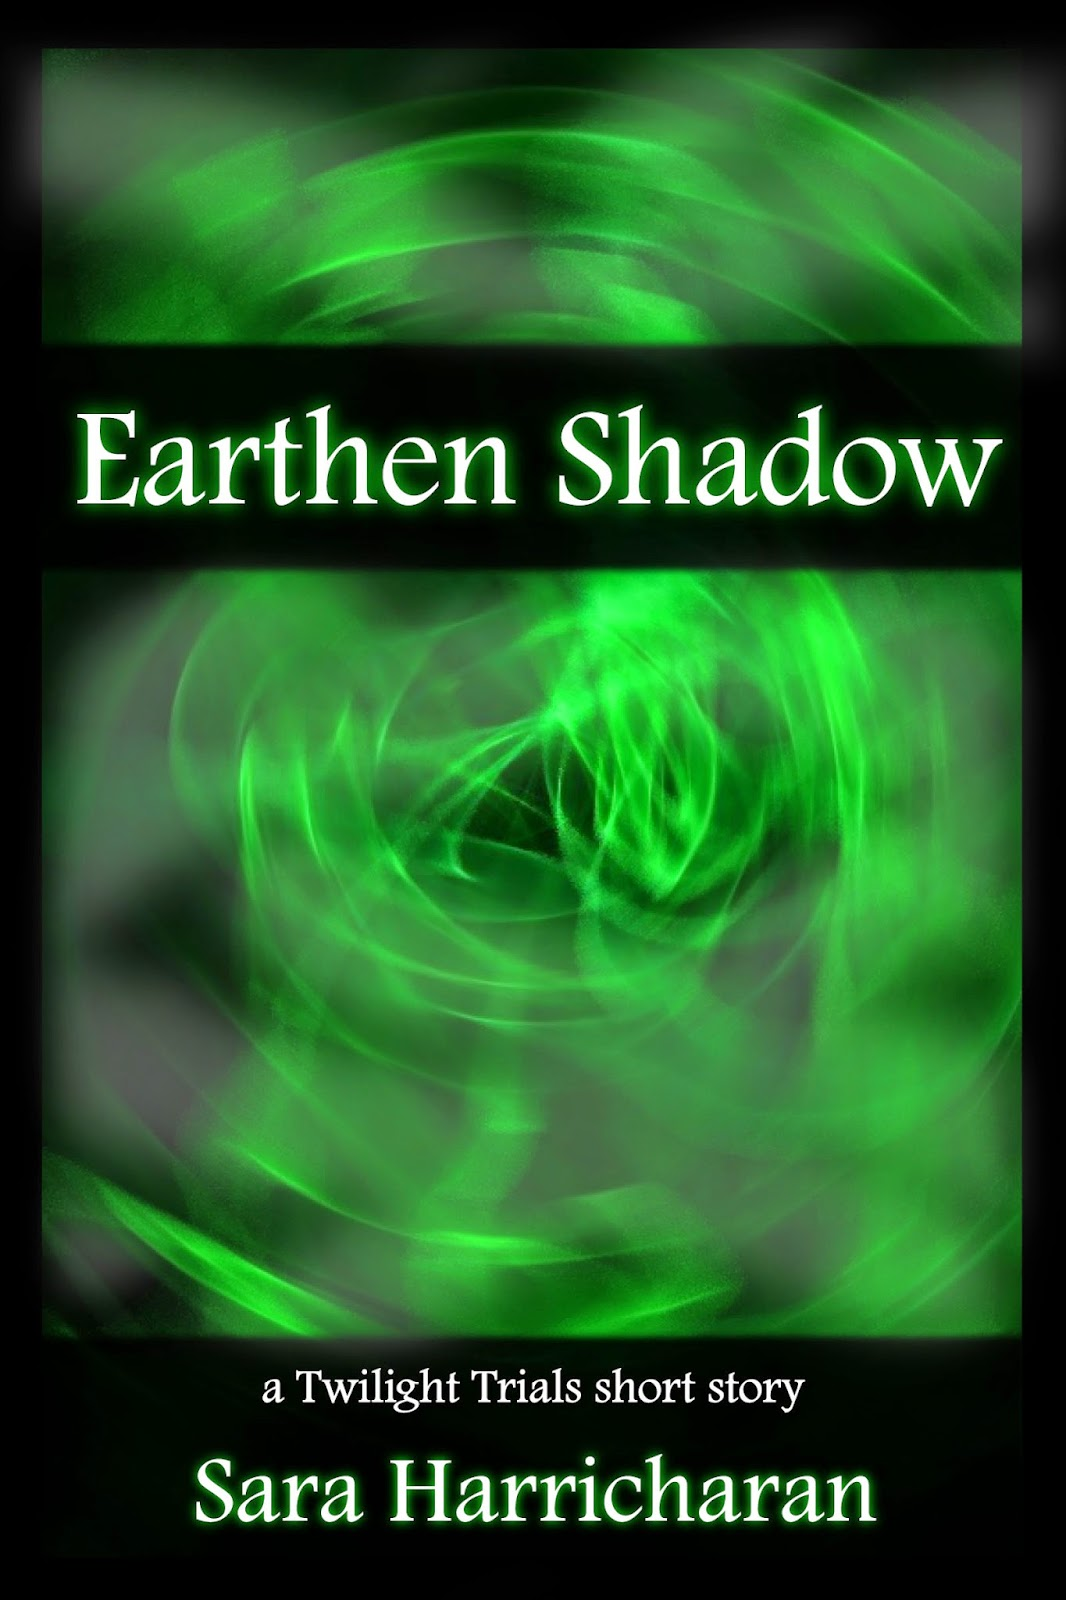 Earthen Shadow (free ebook)